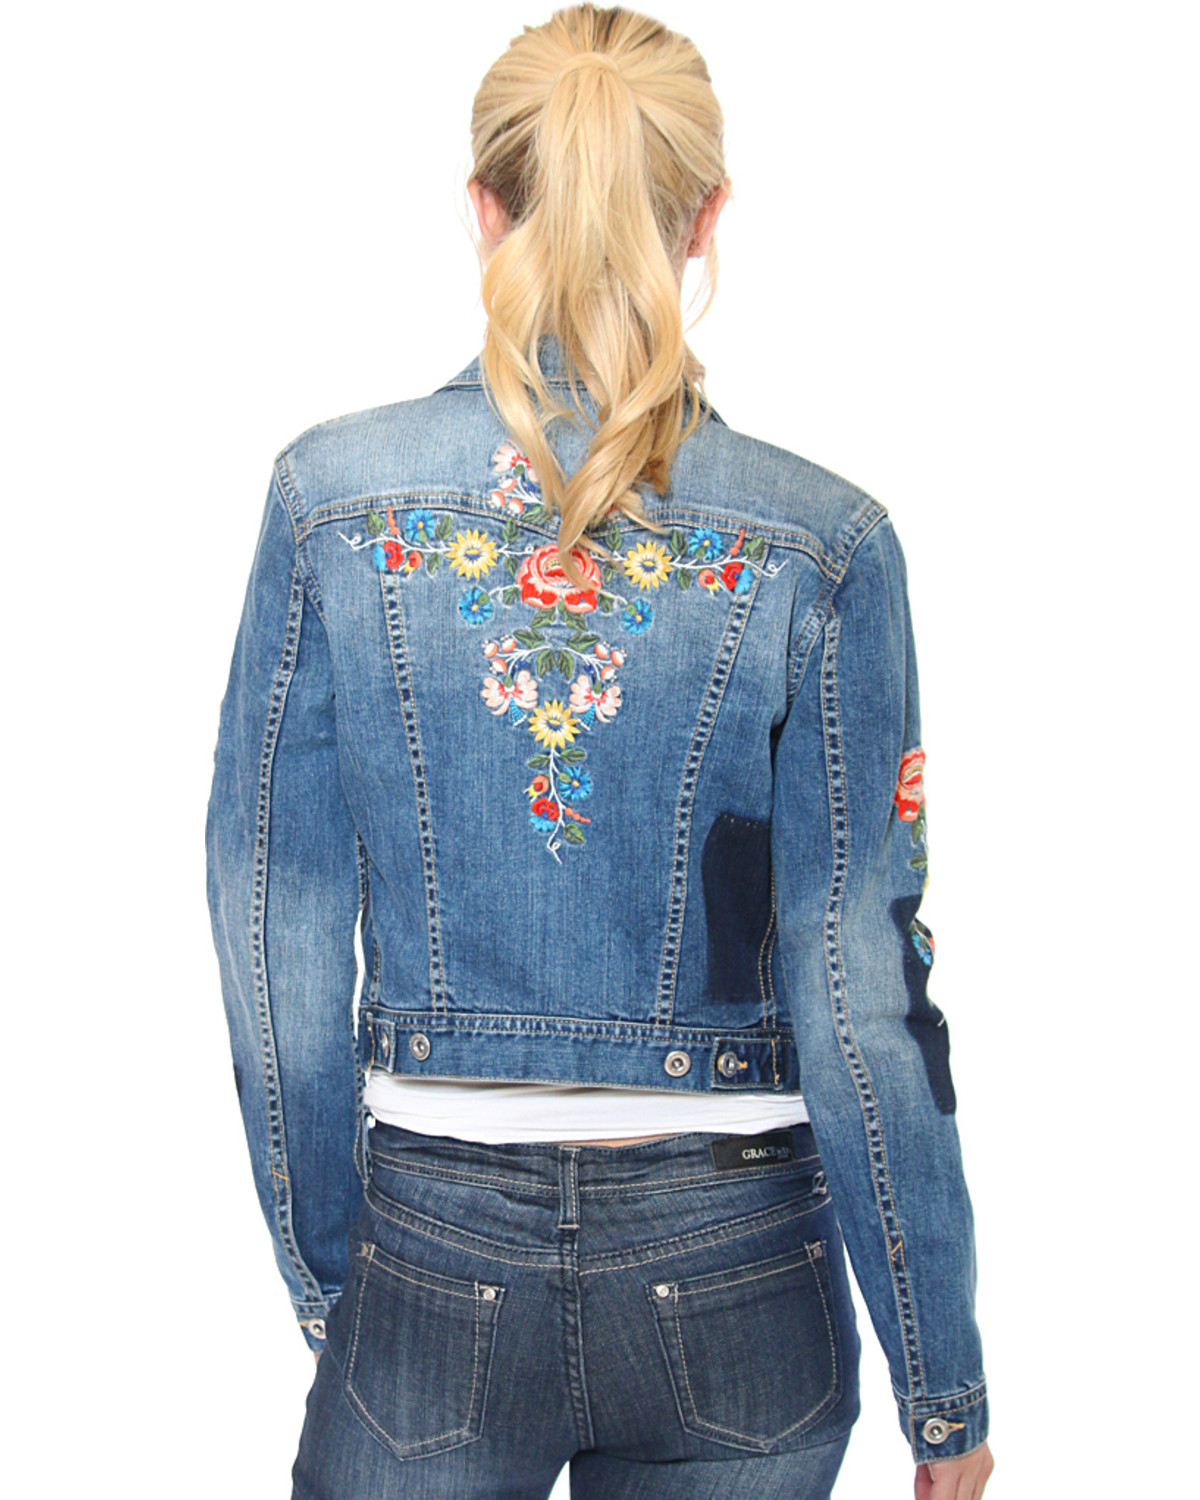 Grace in LA Women s Indigo Floral Embroidered Jean Jacket - Country ... 0c4761749